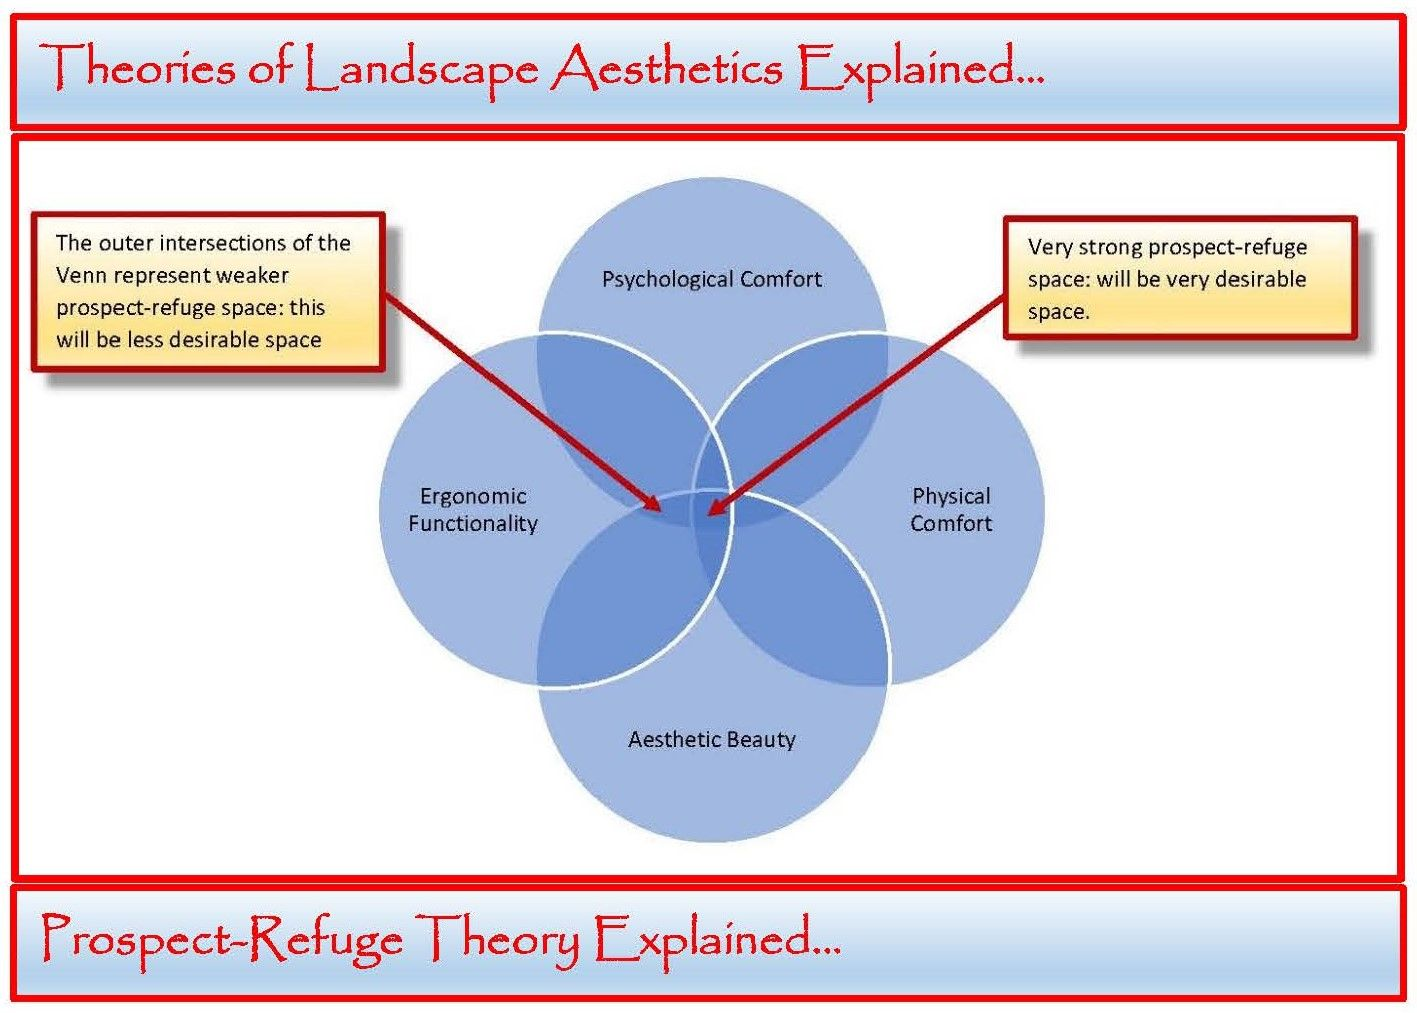 hight resolution of the theory of prospect refuge explained and elaborated for landscape architects landscape designers garden designers and architects learn more